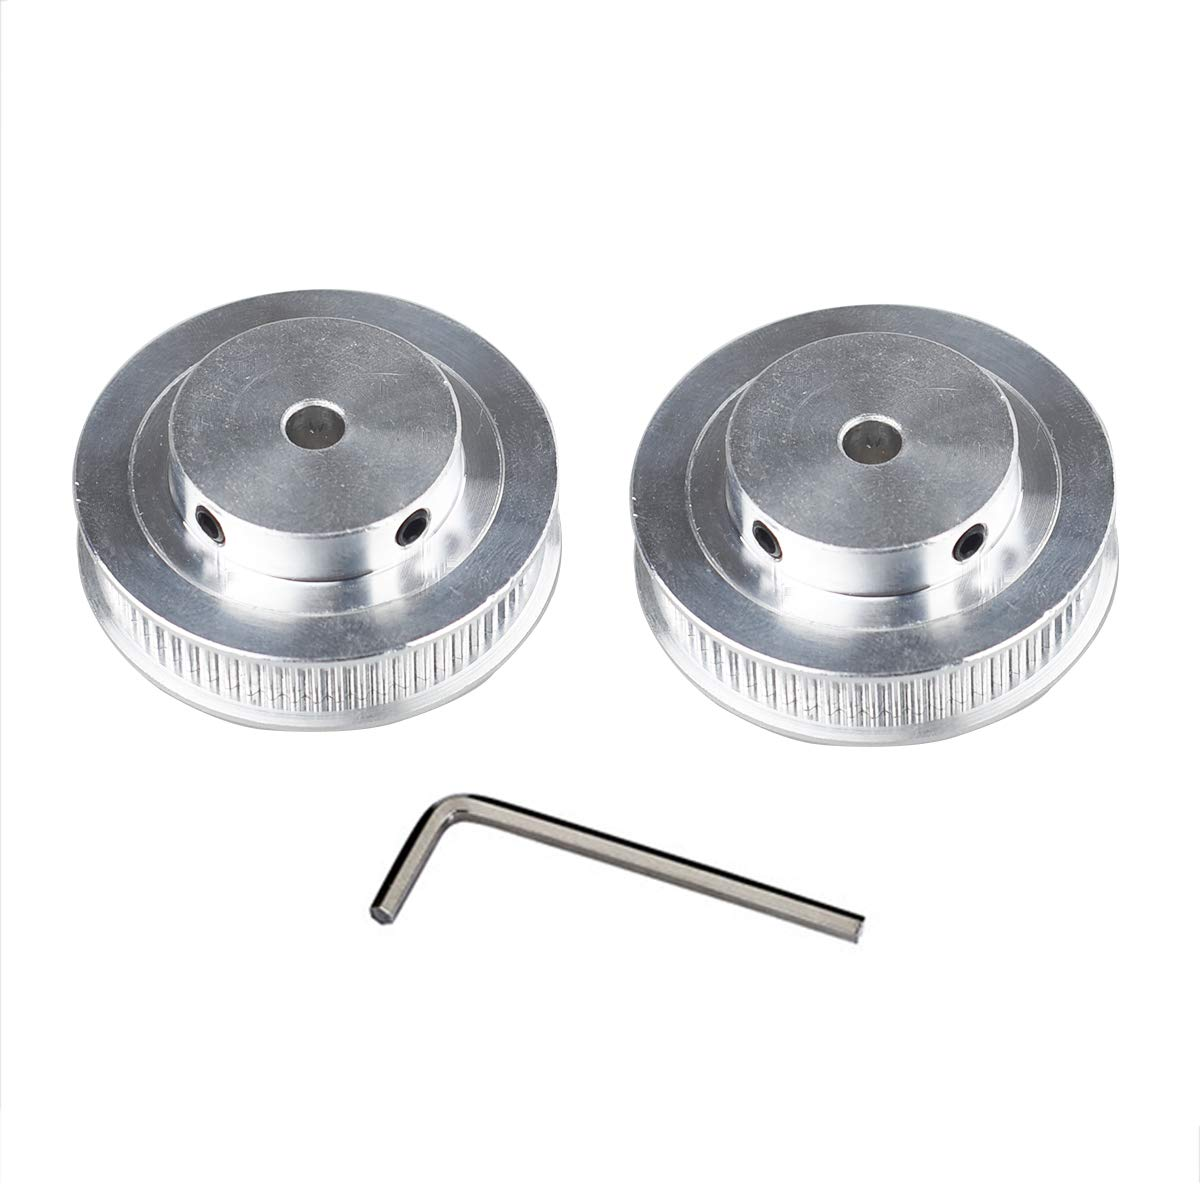 6mm Width Pack-of-2 GT2 Timing Belt Pulley Synchronous Gear Aluminium Wheel for 3D Printer 60 Teeth 5mm Bore